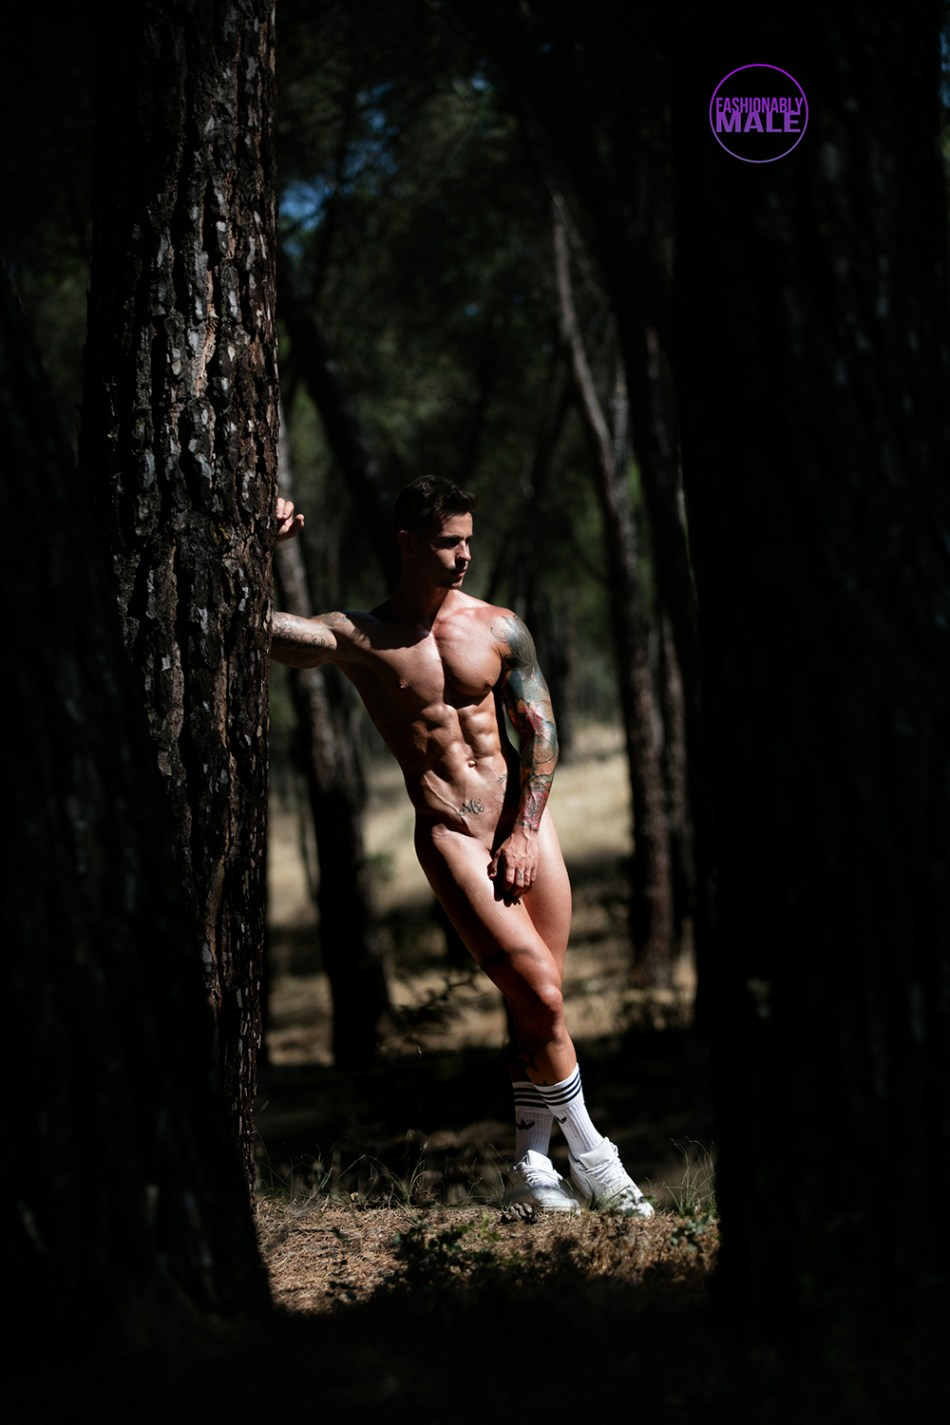 We Want More of Joan Crisol & Alex Bueno - Exclusive Interview